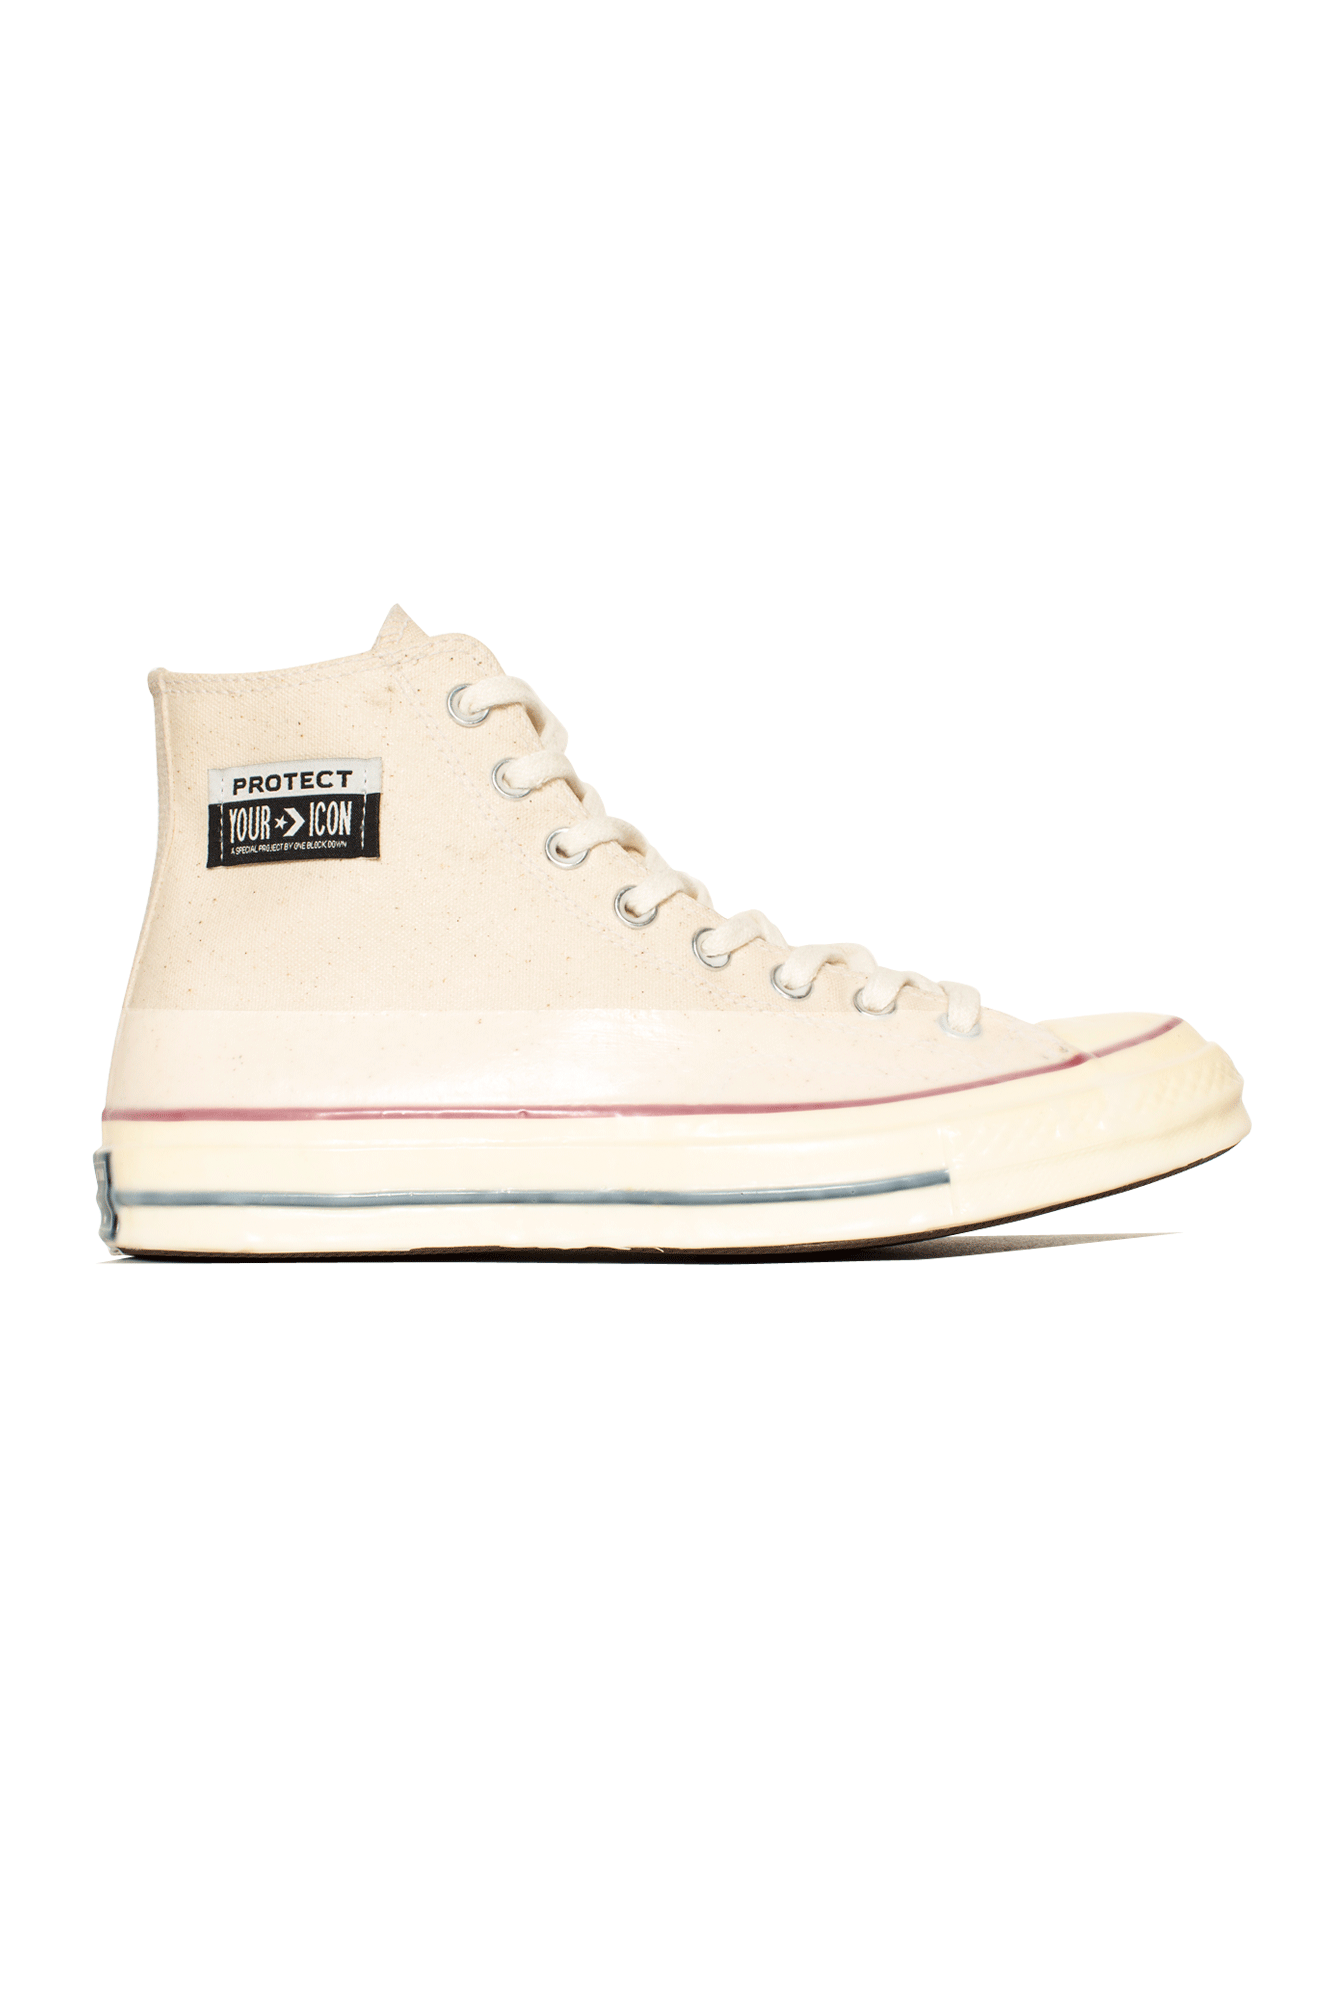 "Converse Sneakers Chuck 70 Hi x One Block Down ""Protect Your Icon"" White 162053COBD#000#PRC#4,5 - One Block Down"